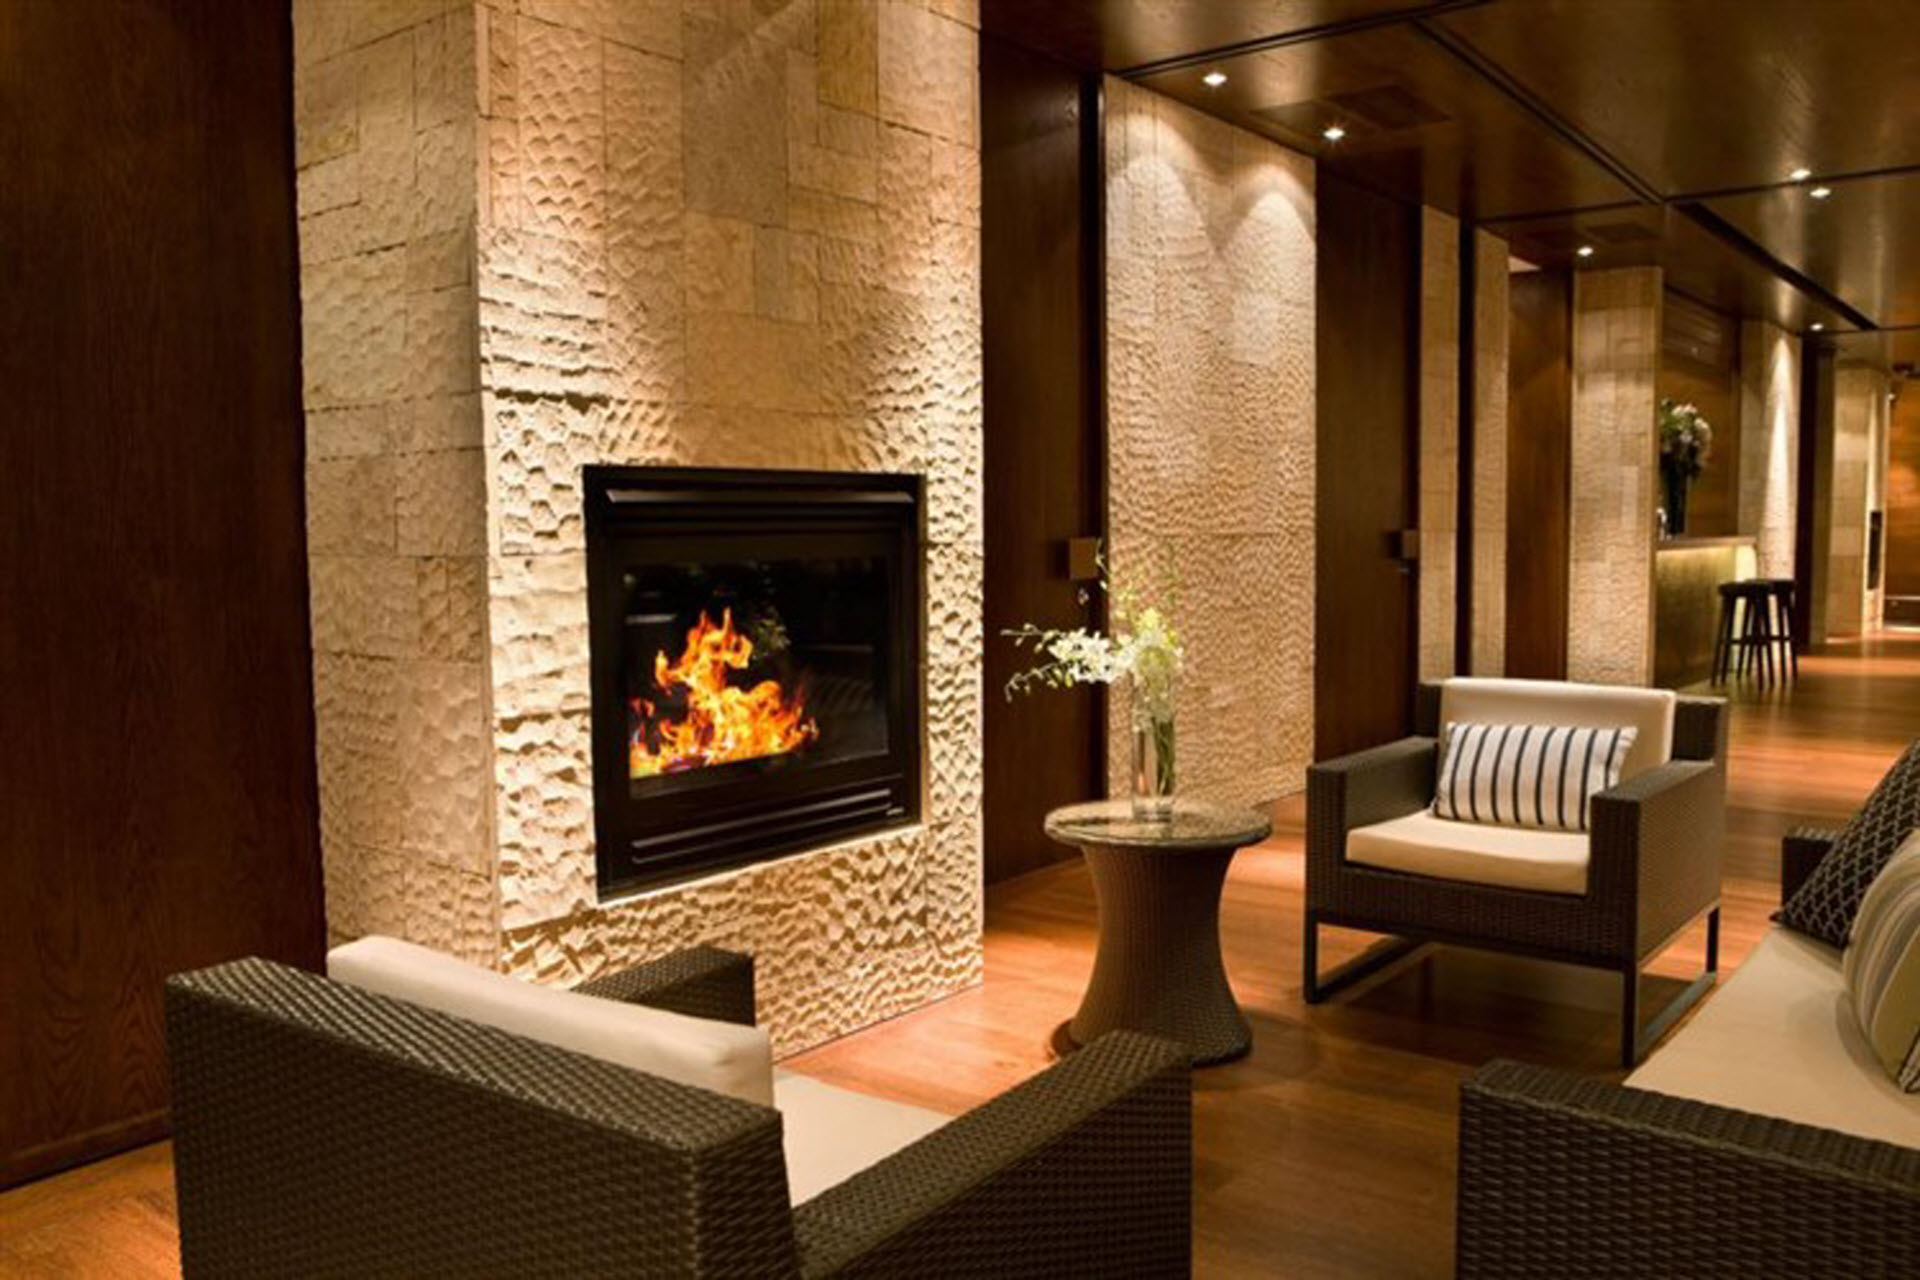 Rattan Lounges with Fireplace